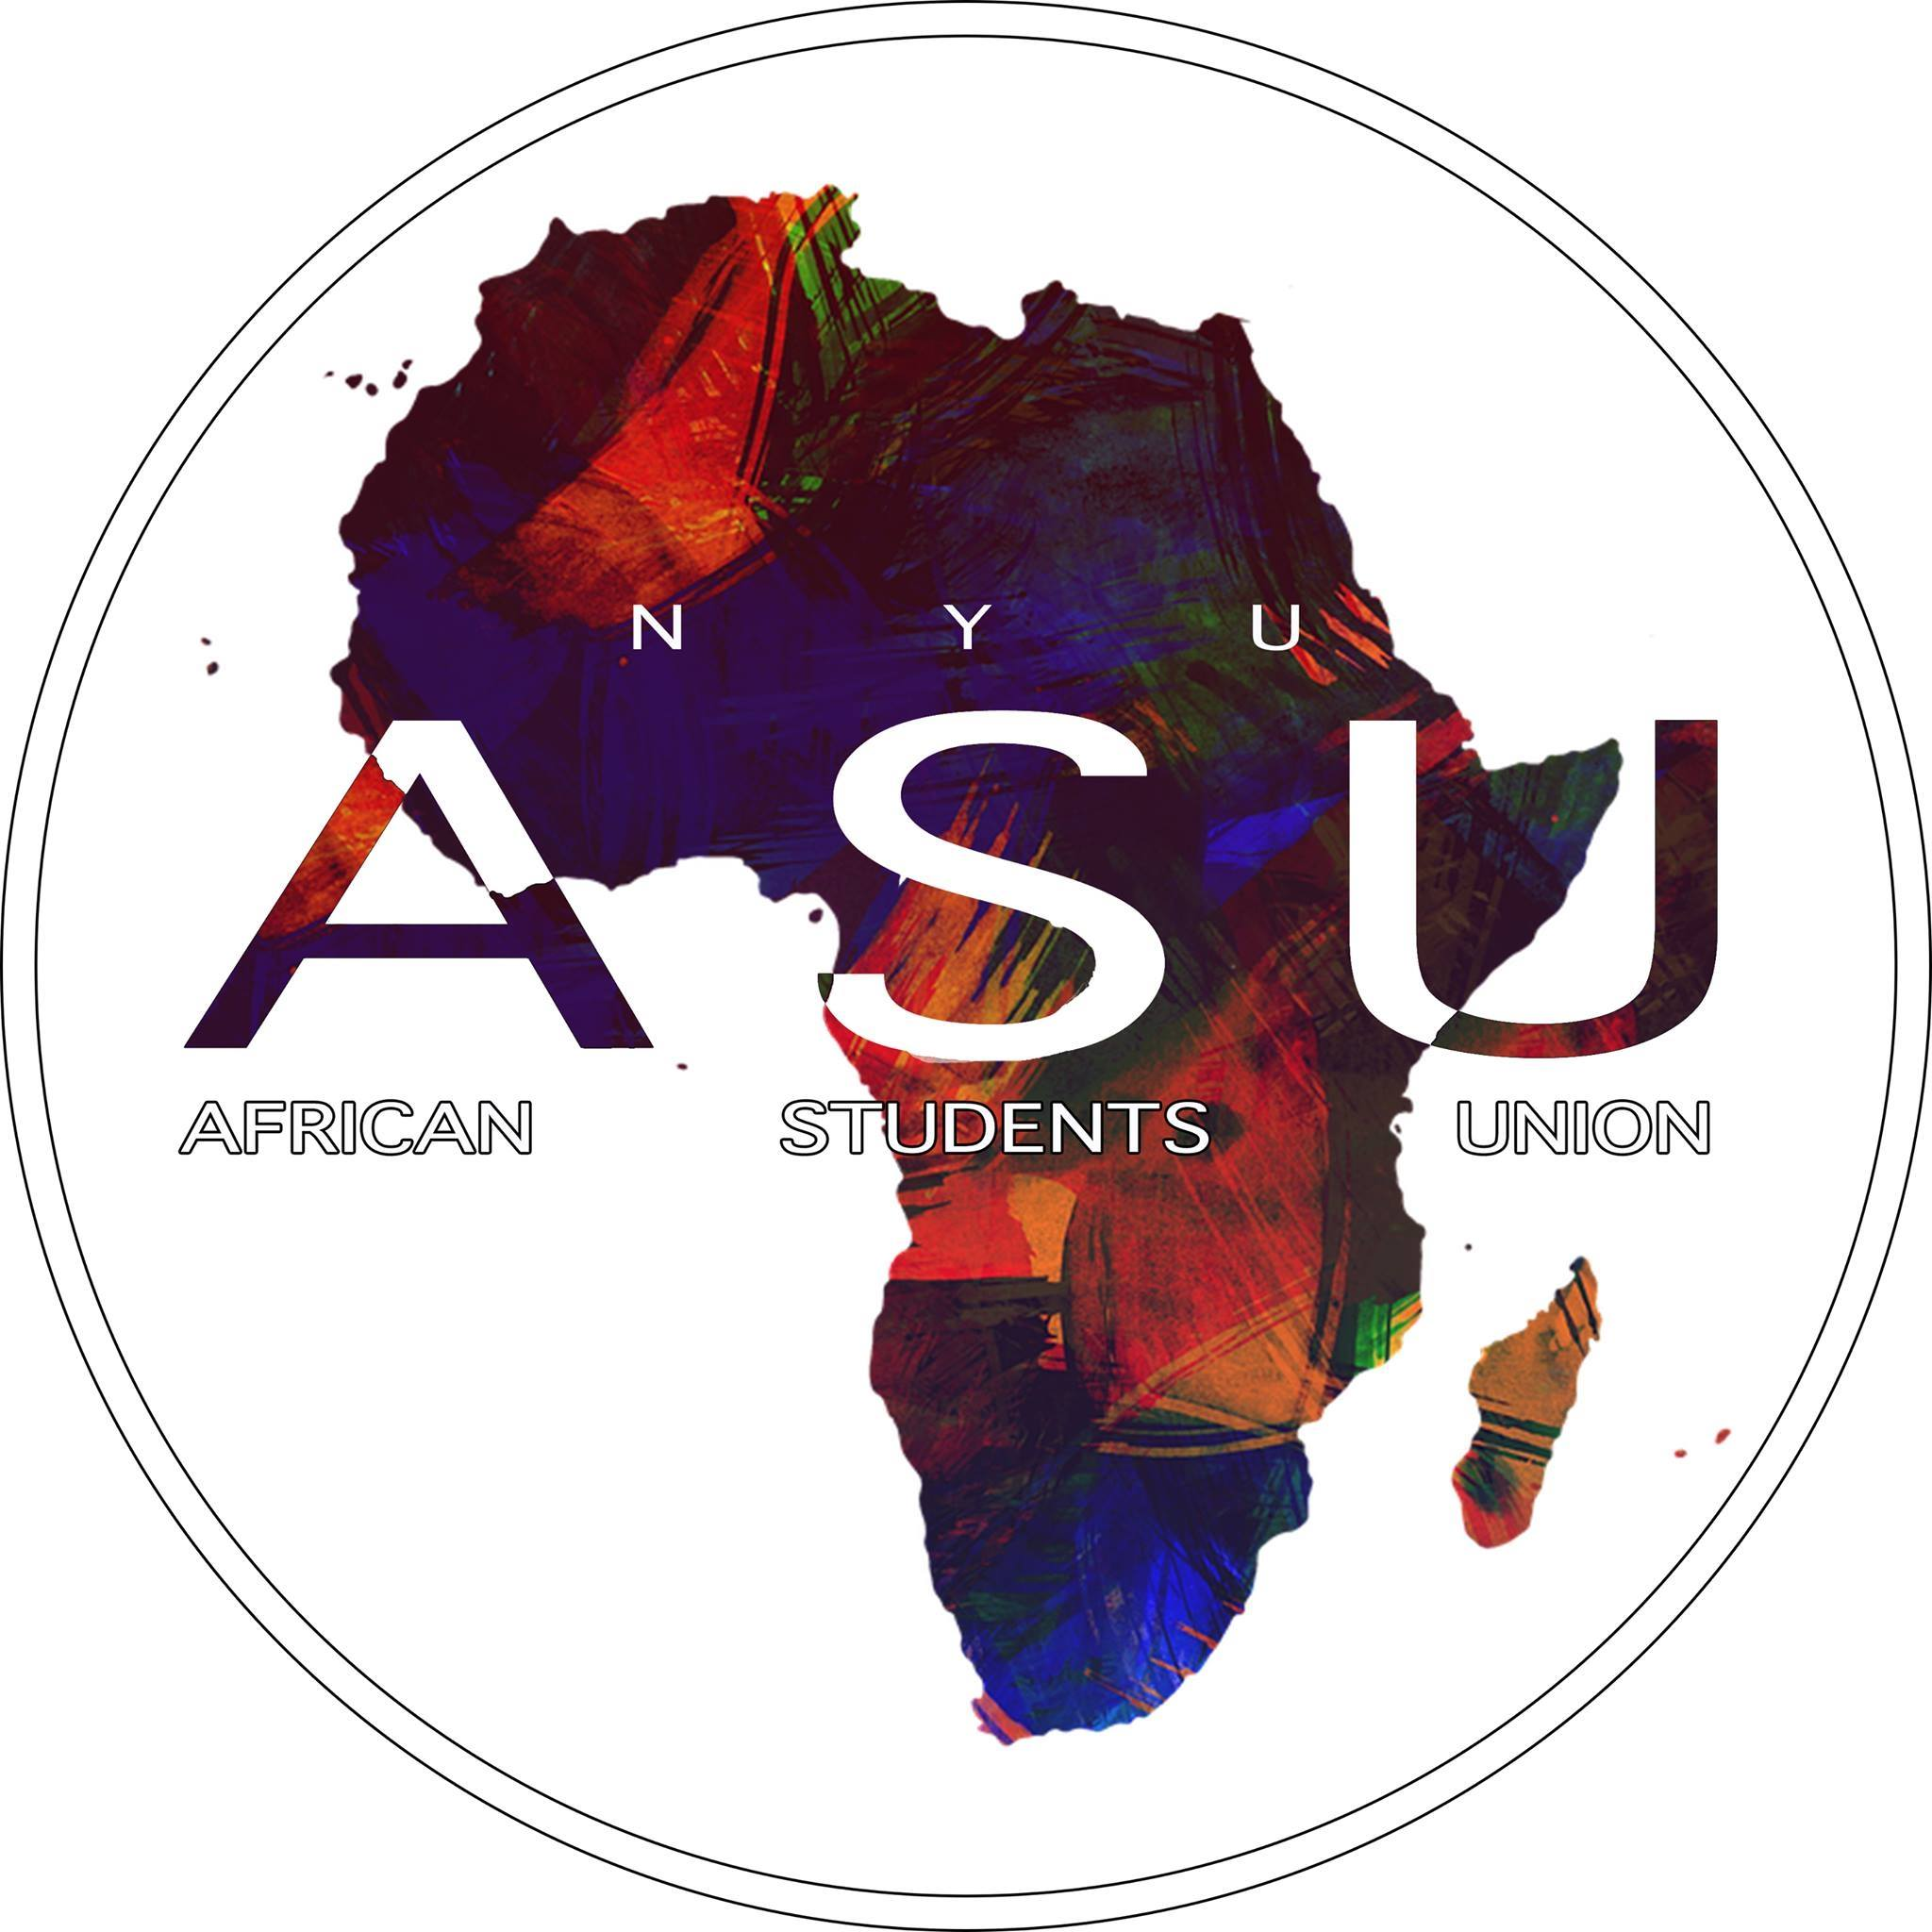 African Students Union.jpg